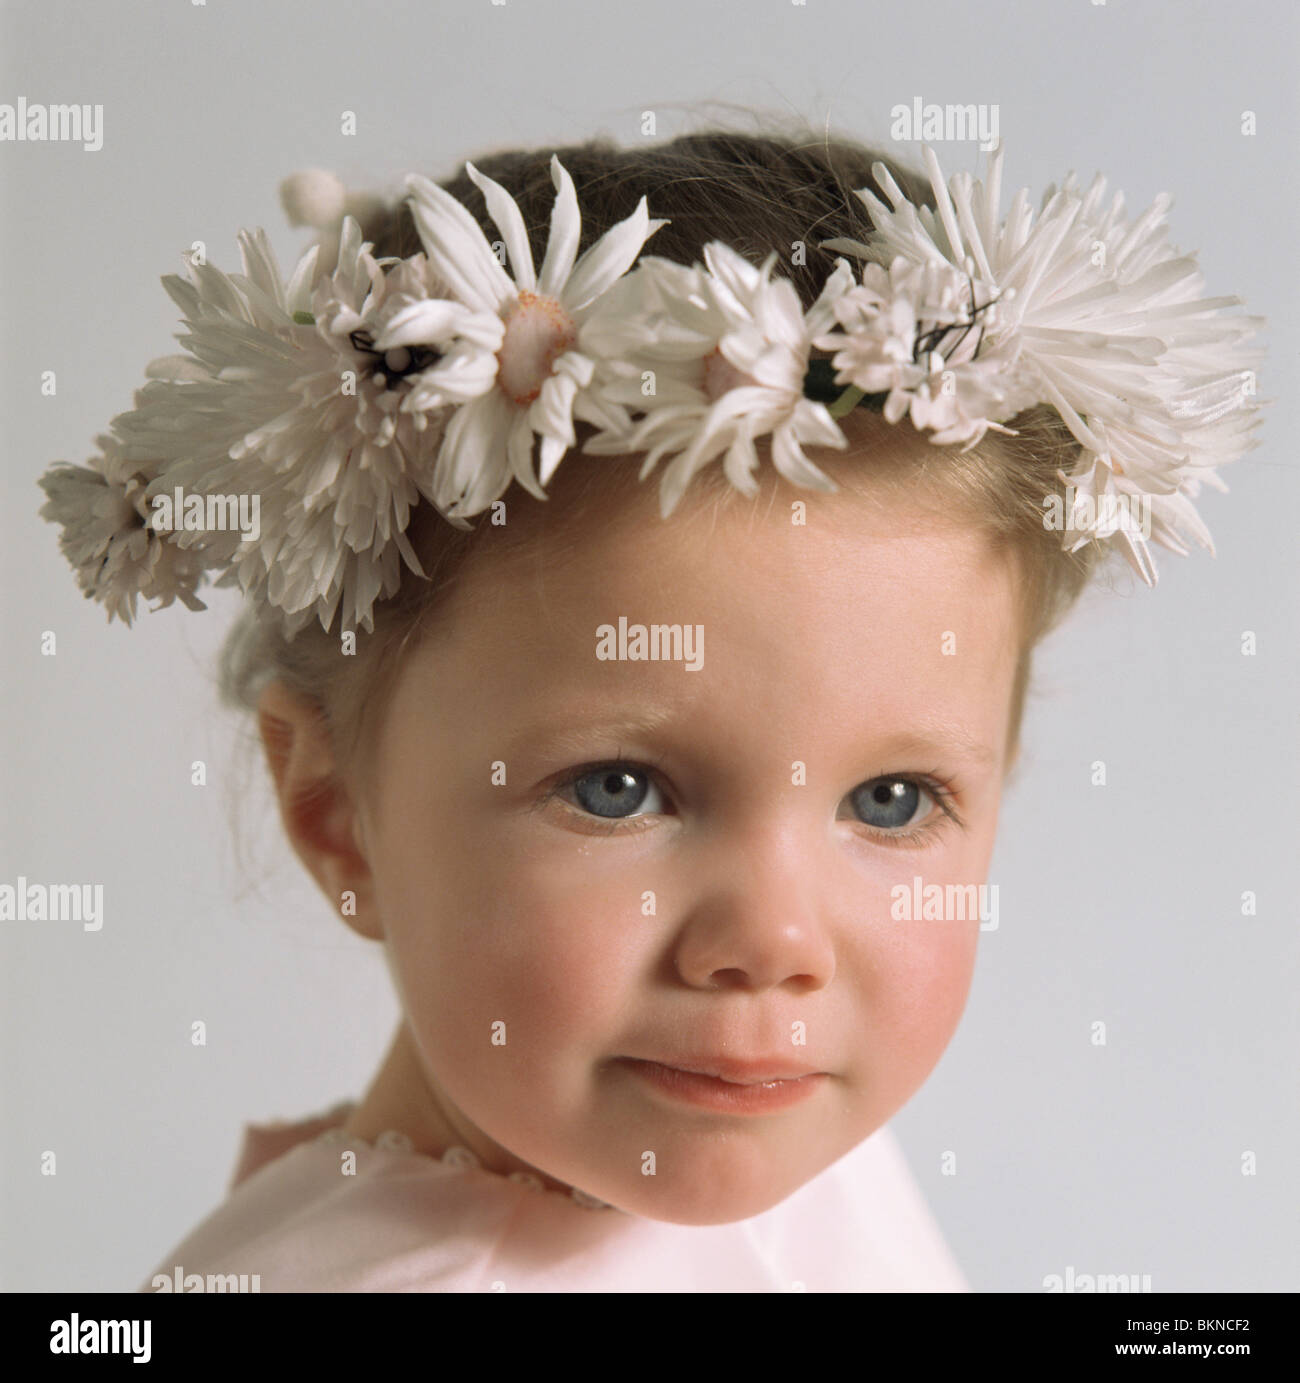 Cloes Up Of A Young Girl Wearing A Crown Made Of Flowers Stock Photo